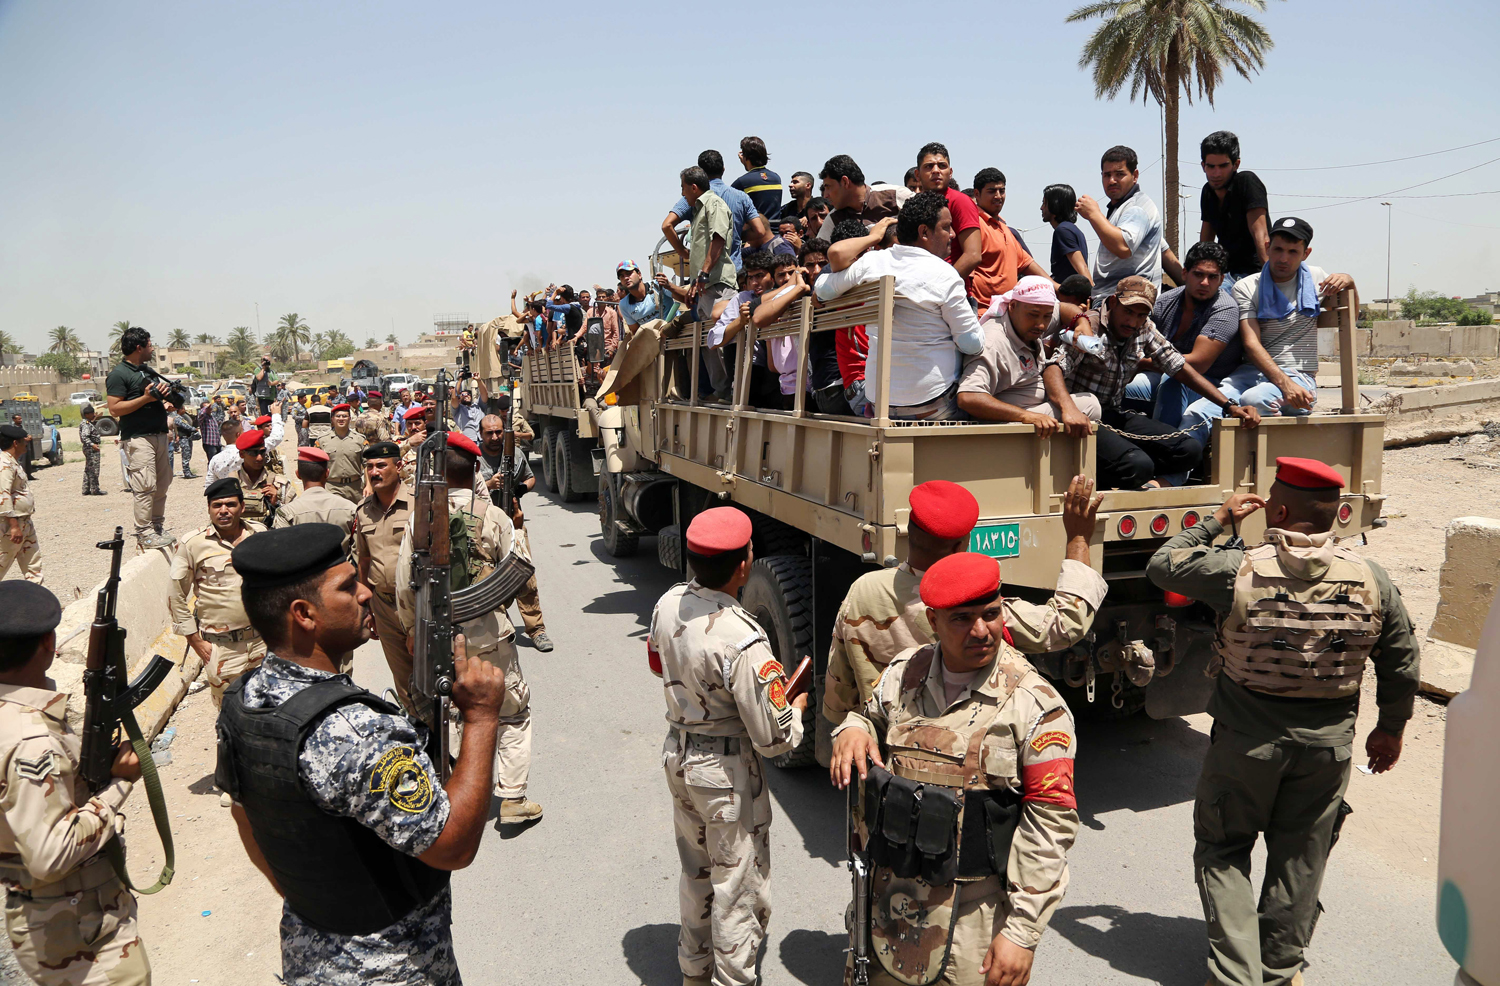 Men board military trucks to join the Iraqi army at the main recruiting center in Baghdad on June 14, after authorities urged Iraqis to help battle insurgents.